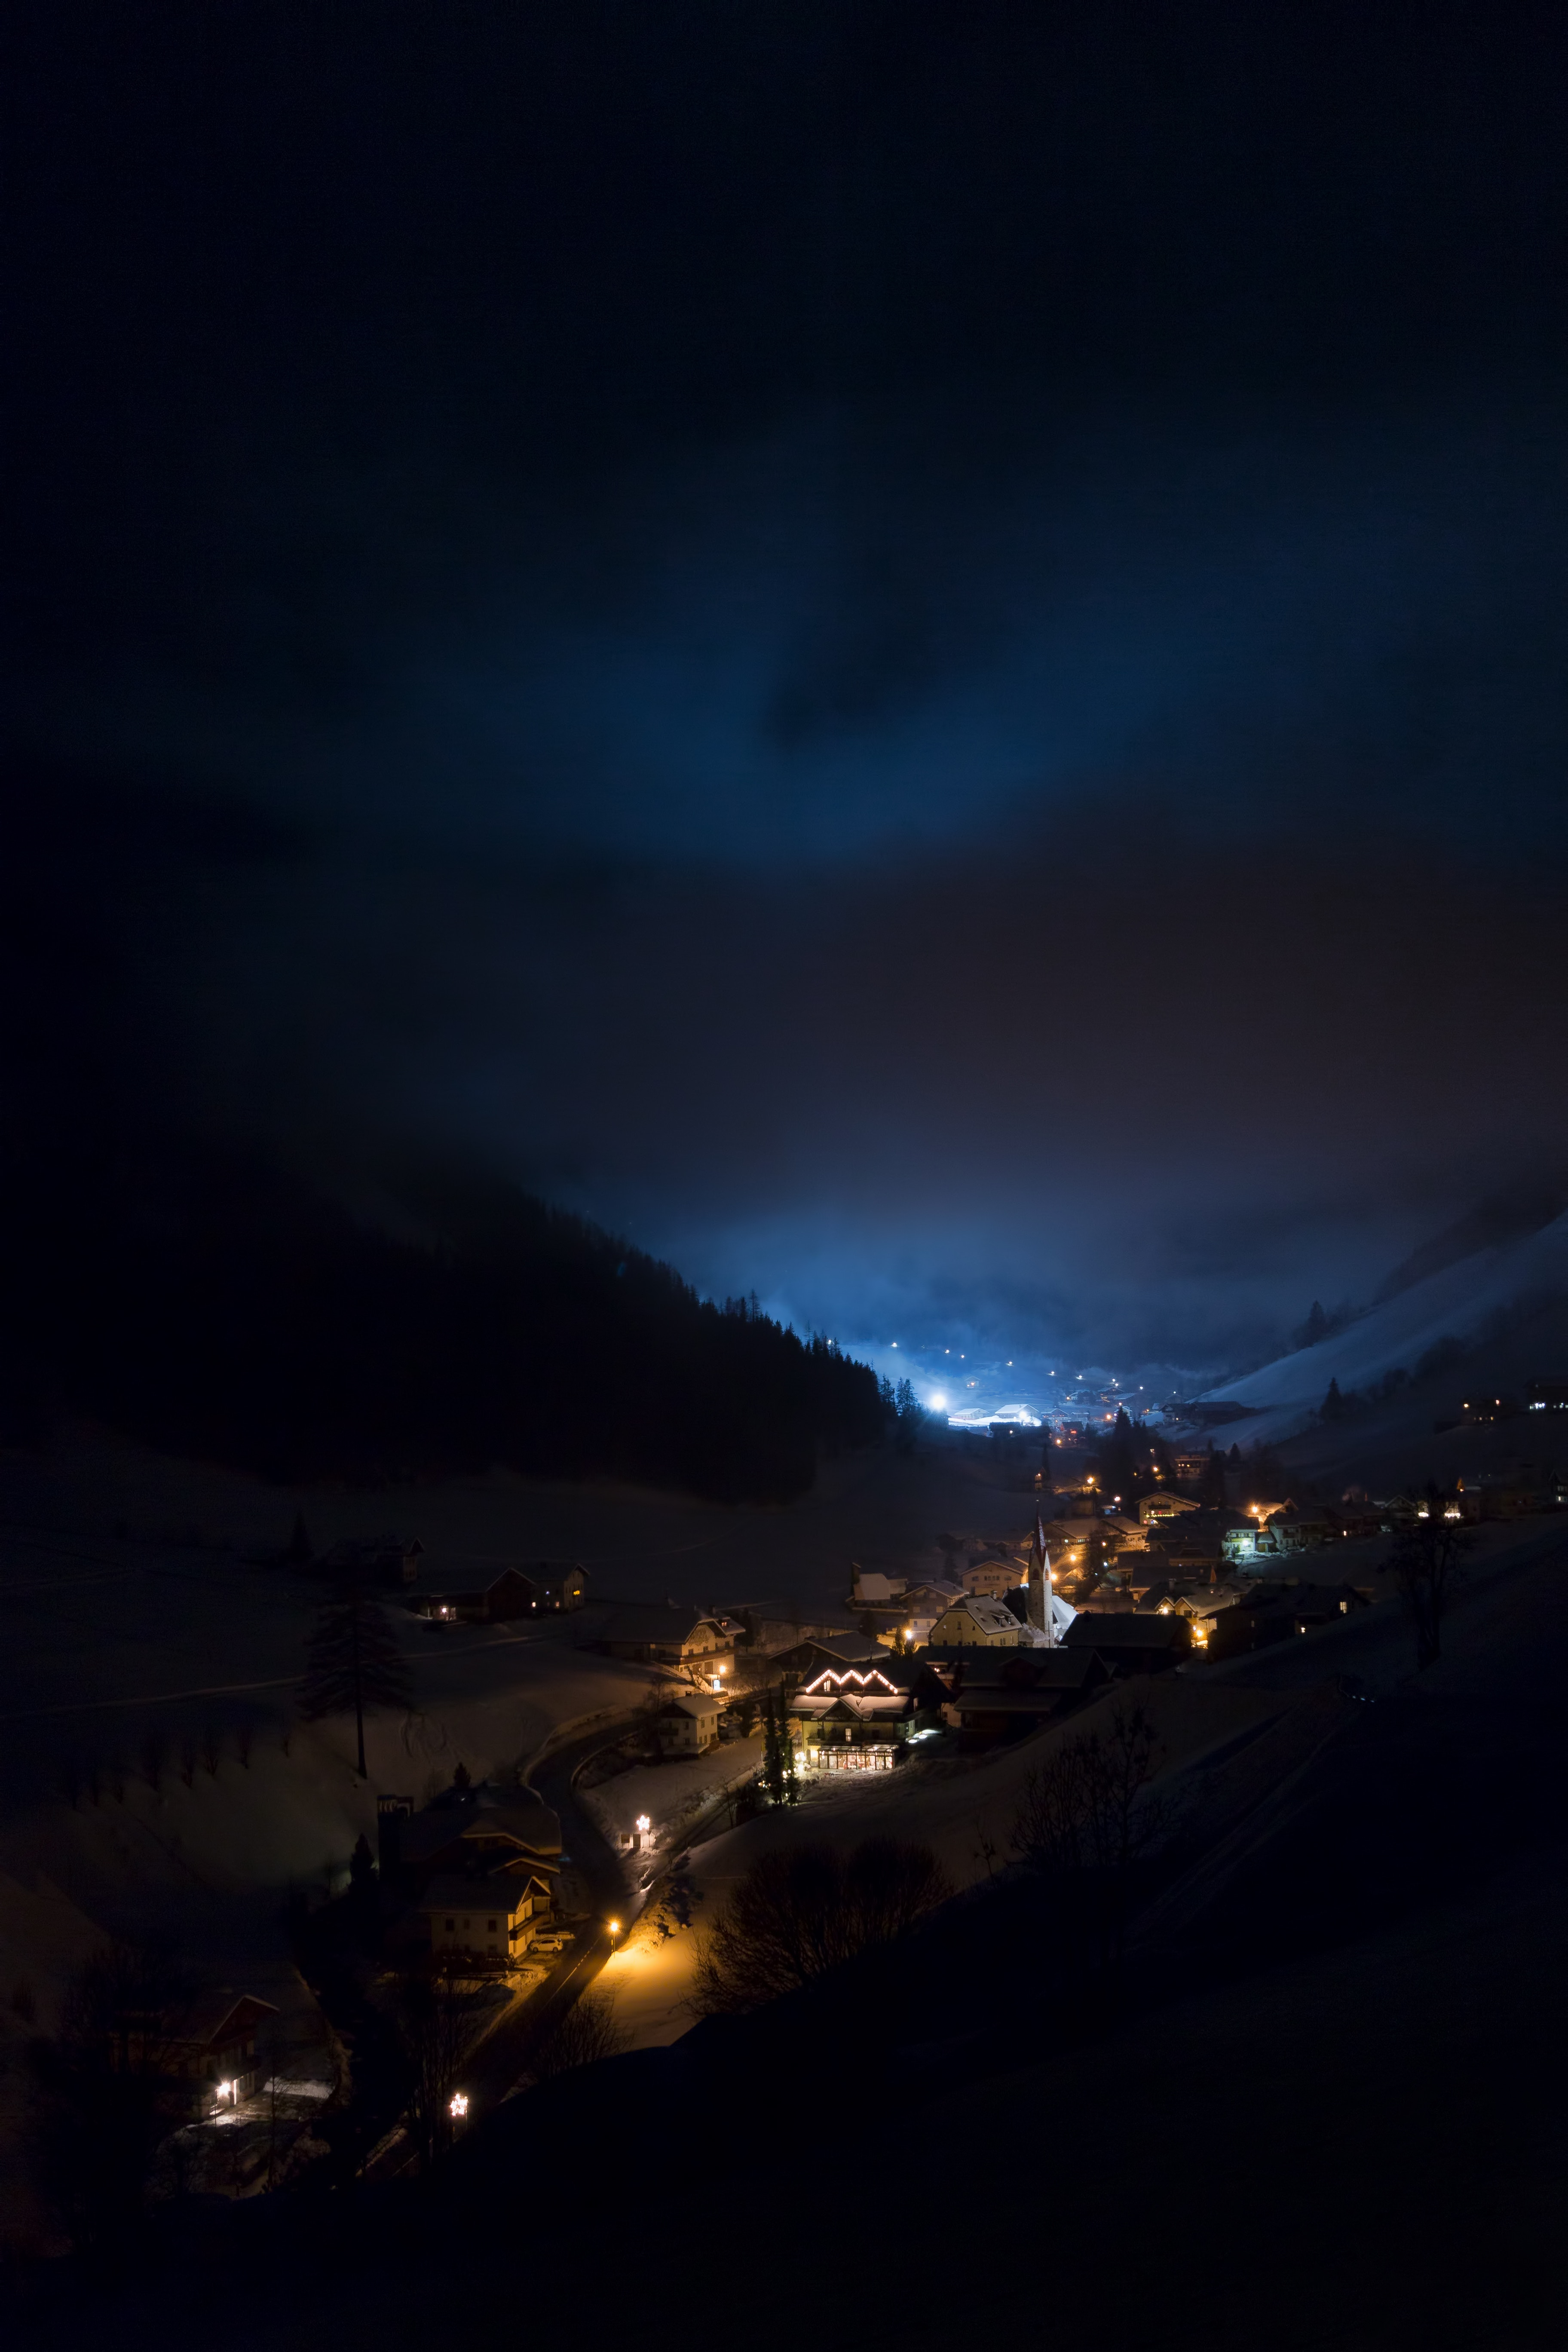 155965 download wallpaper Nature, Night, Buildings, Shine, Light, Mountains screensavers and pictures for free